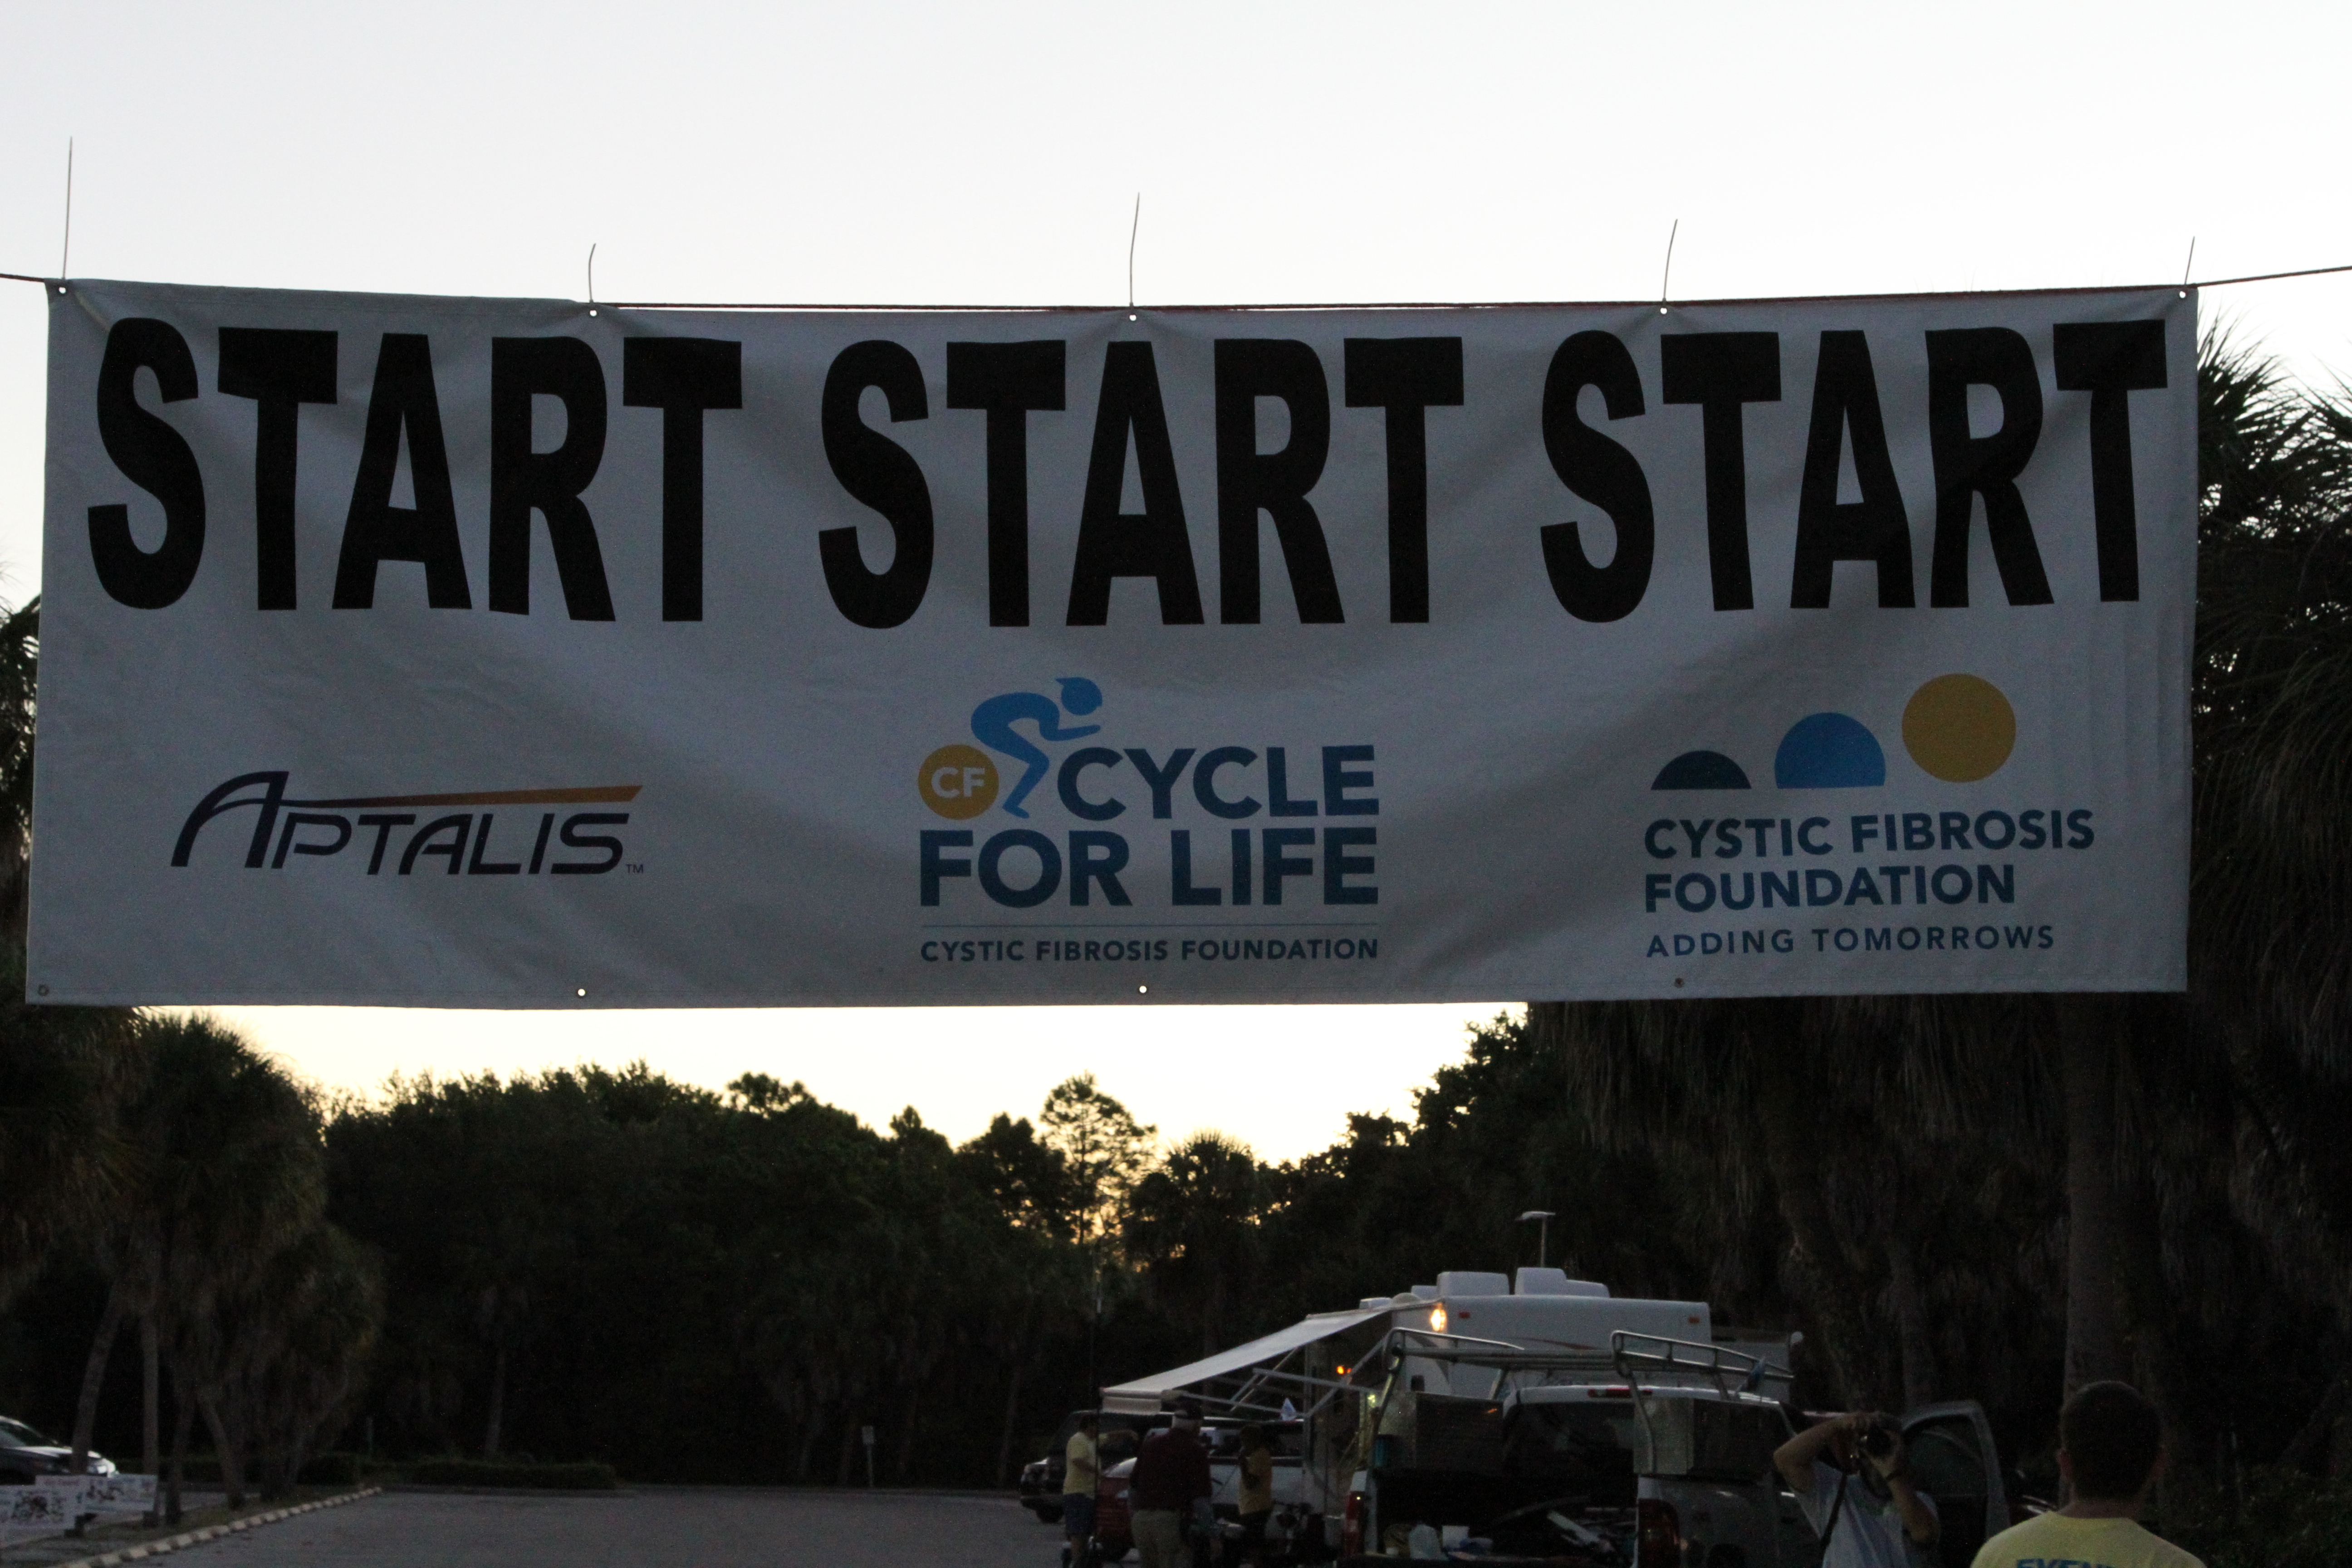 CF Cycle For Life bicycle ride this morning in St. Petersburg